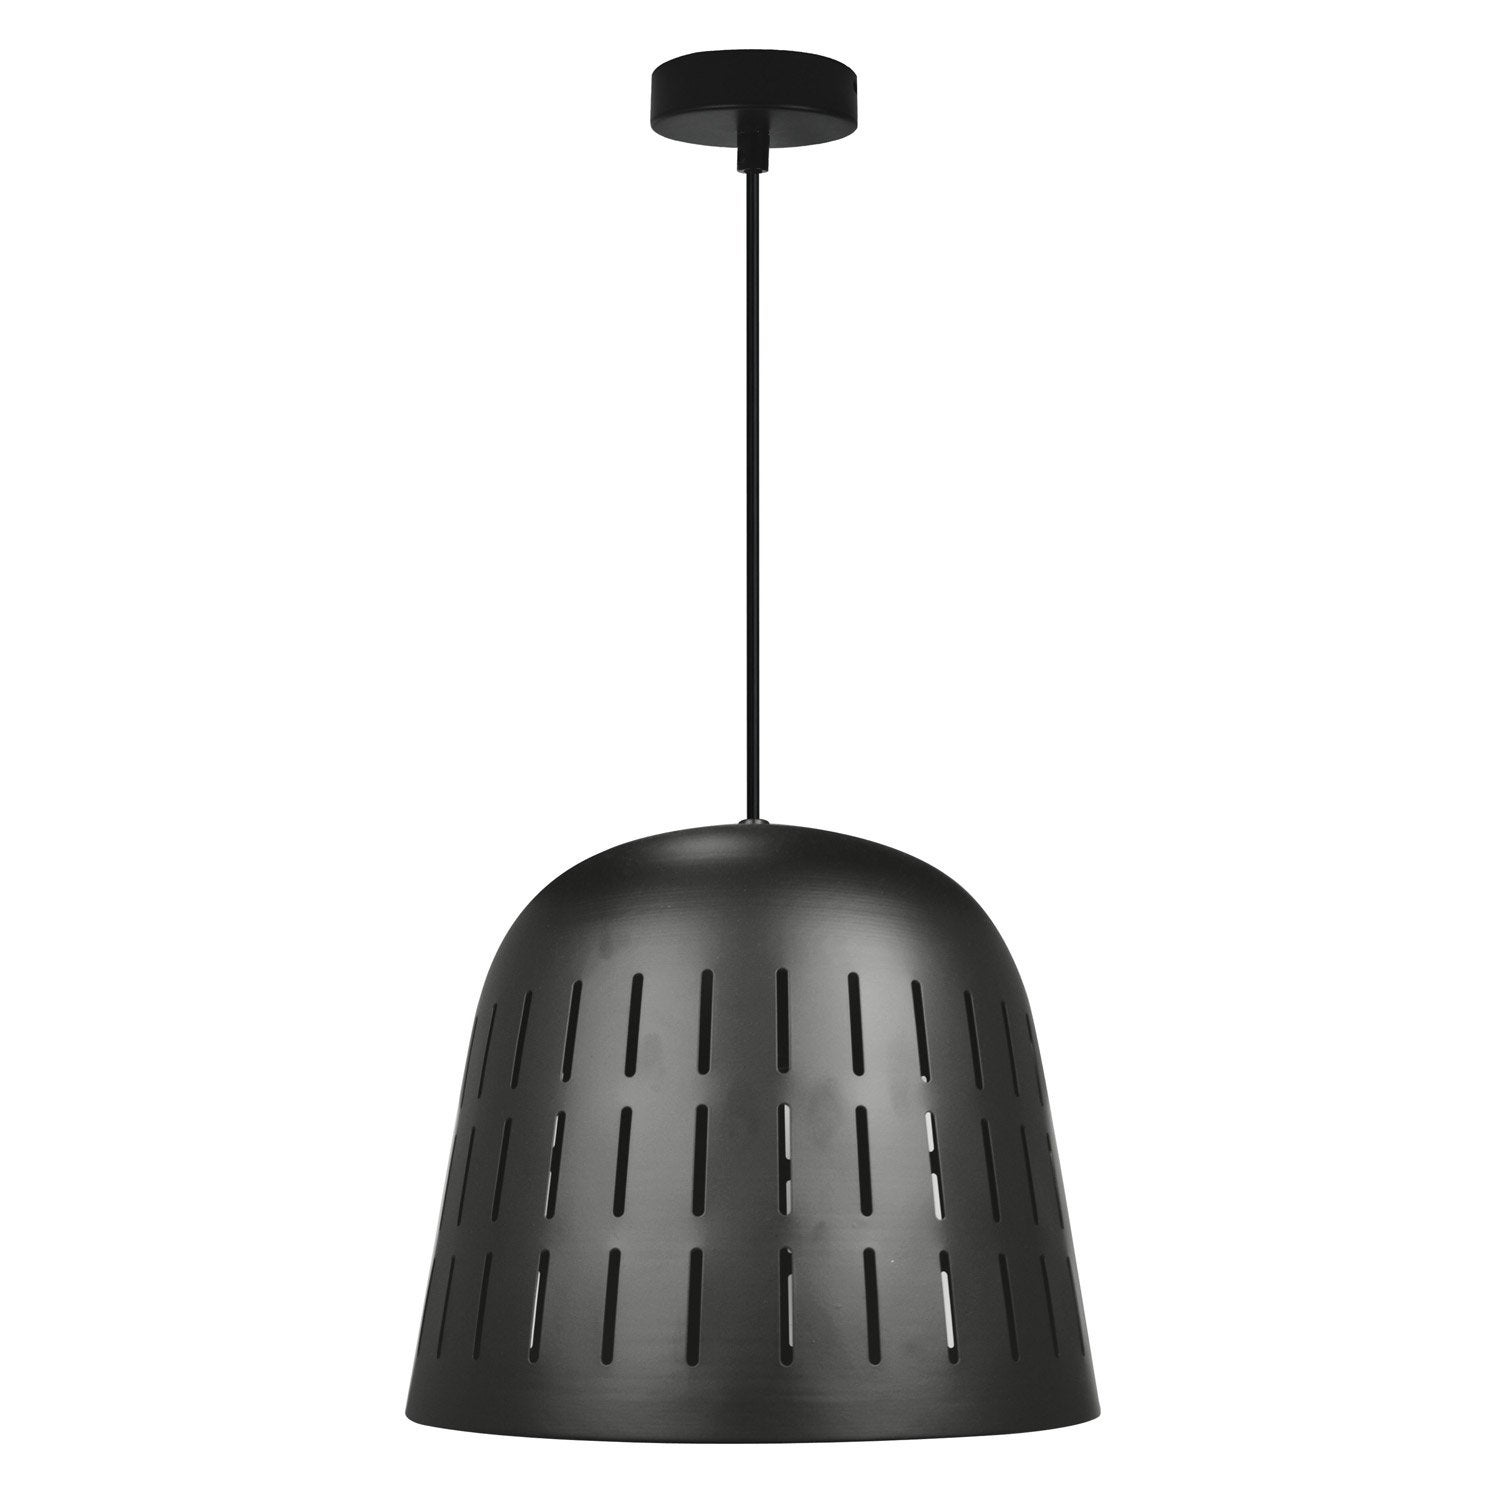 Suspension Design Salon Lampe suspension design original en fibre